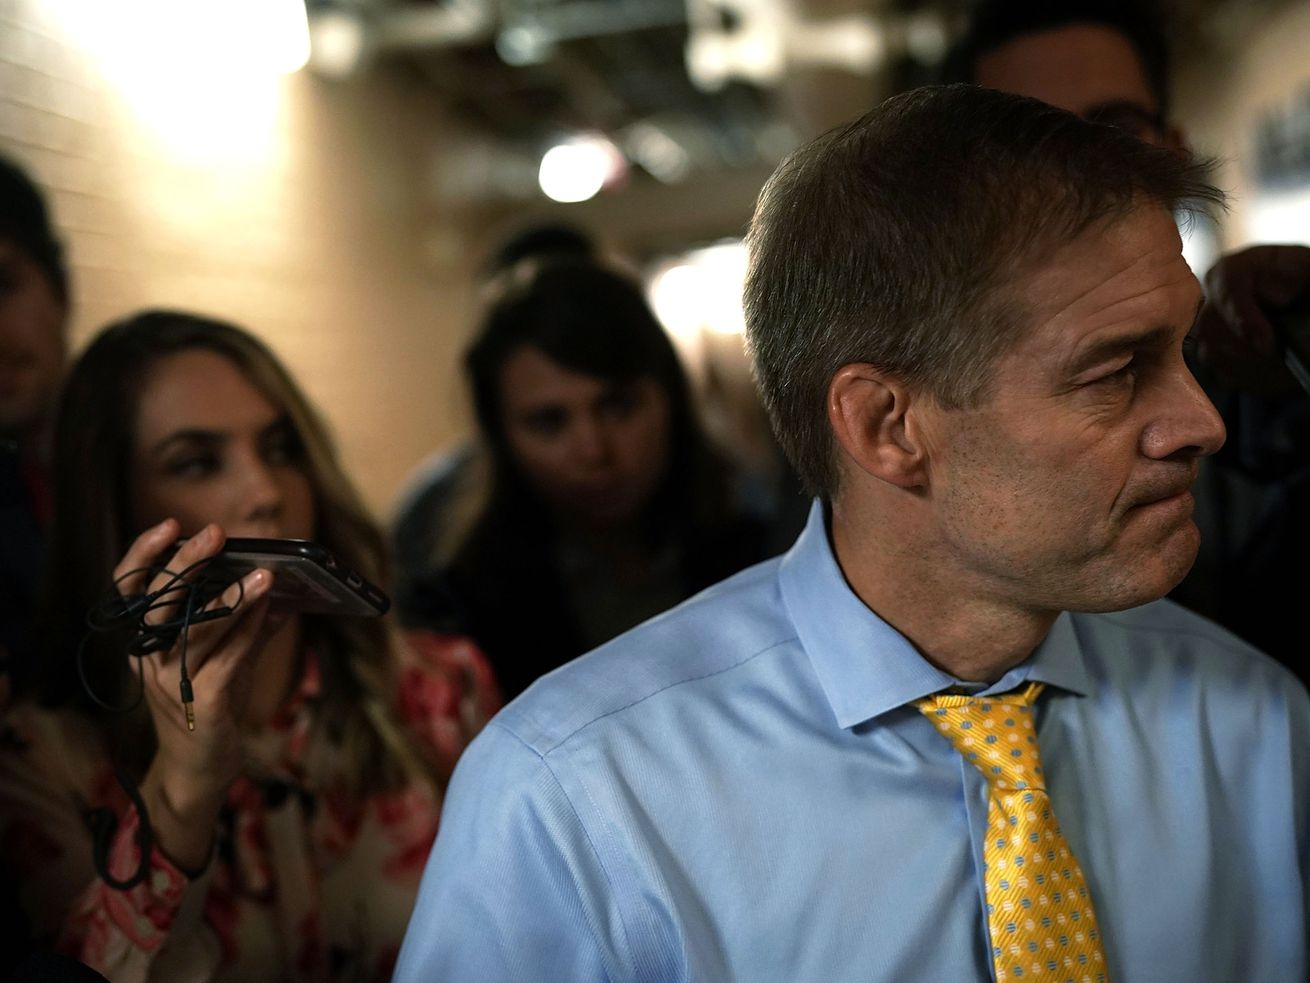 Rep. Jim Jordan has attacked CNN for reaching out to his former staffers.